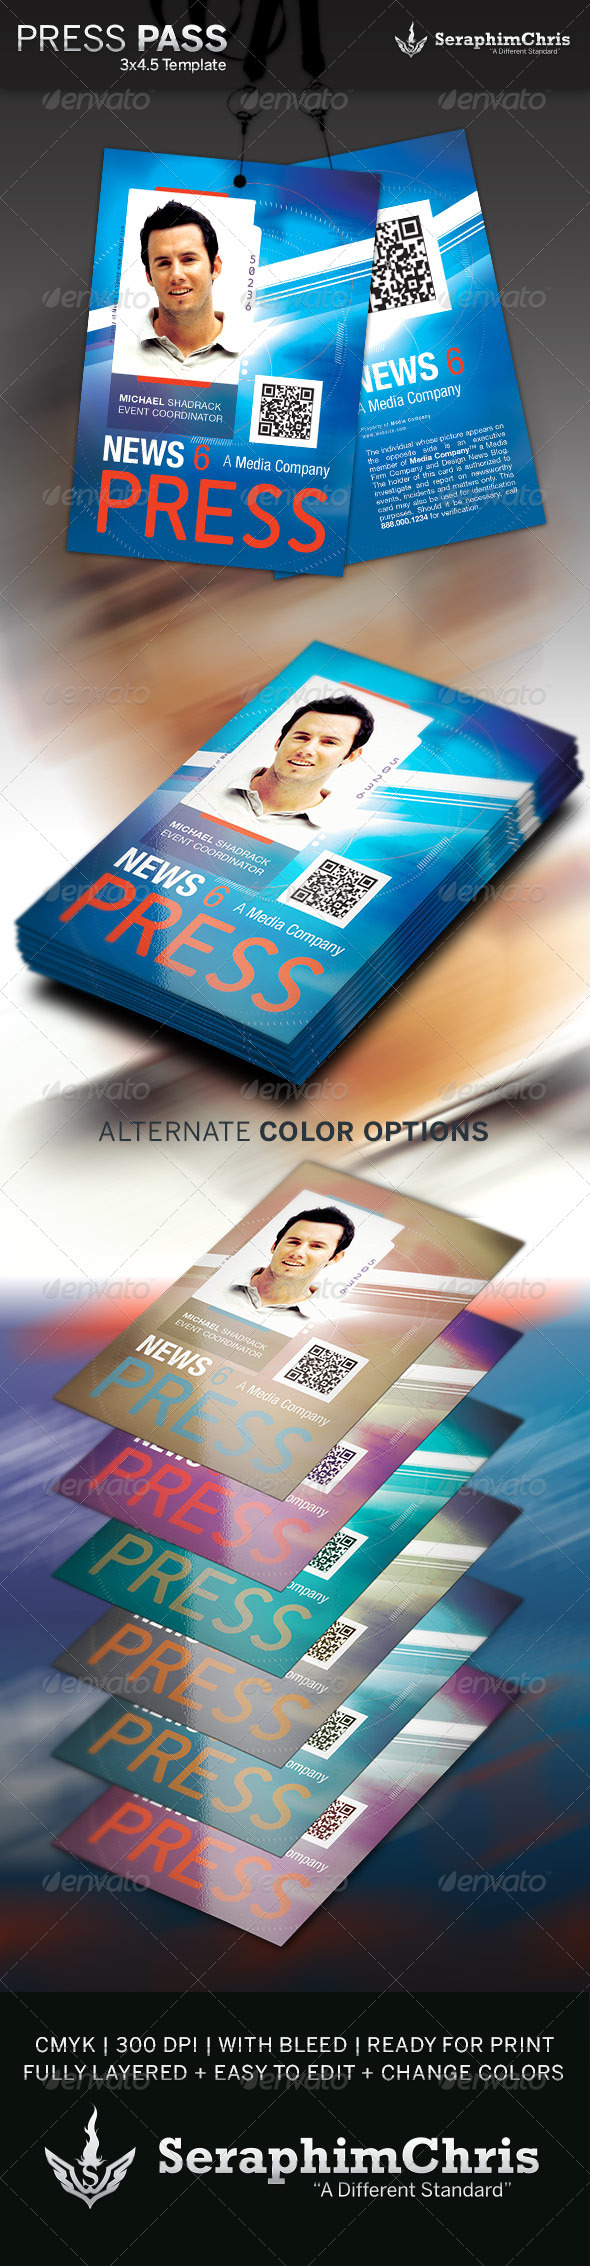 Press Pass Template 3 by SeraphimChris | GraphicRiver